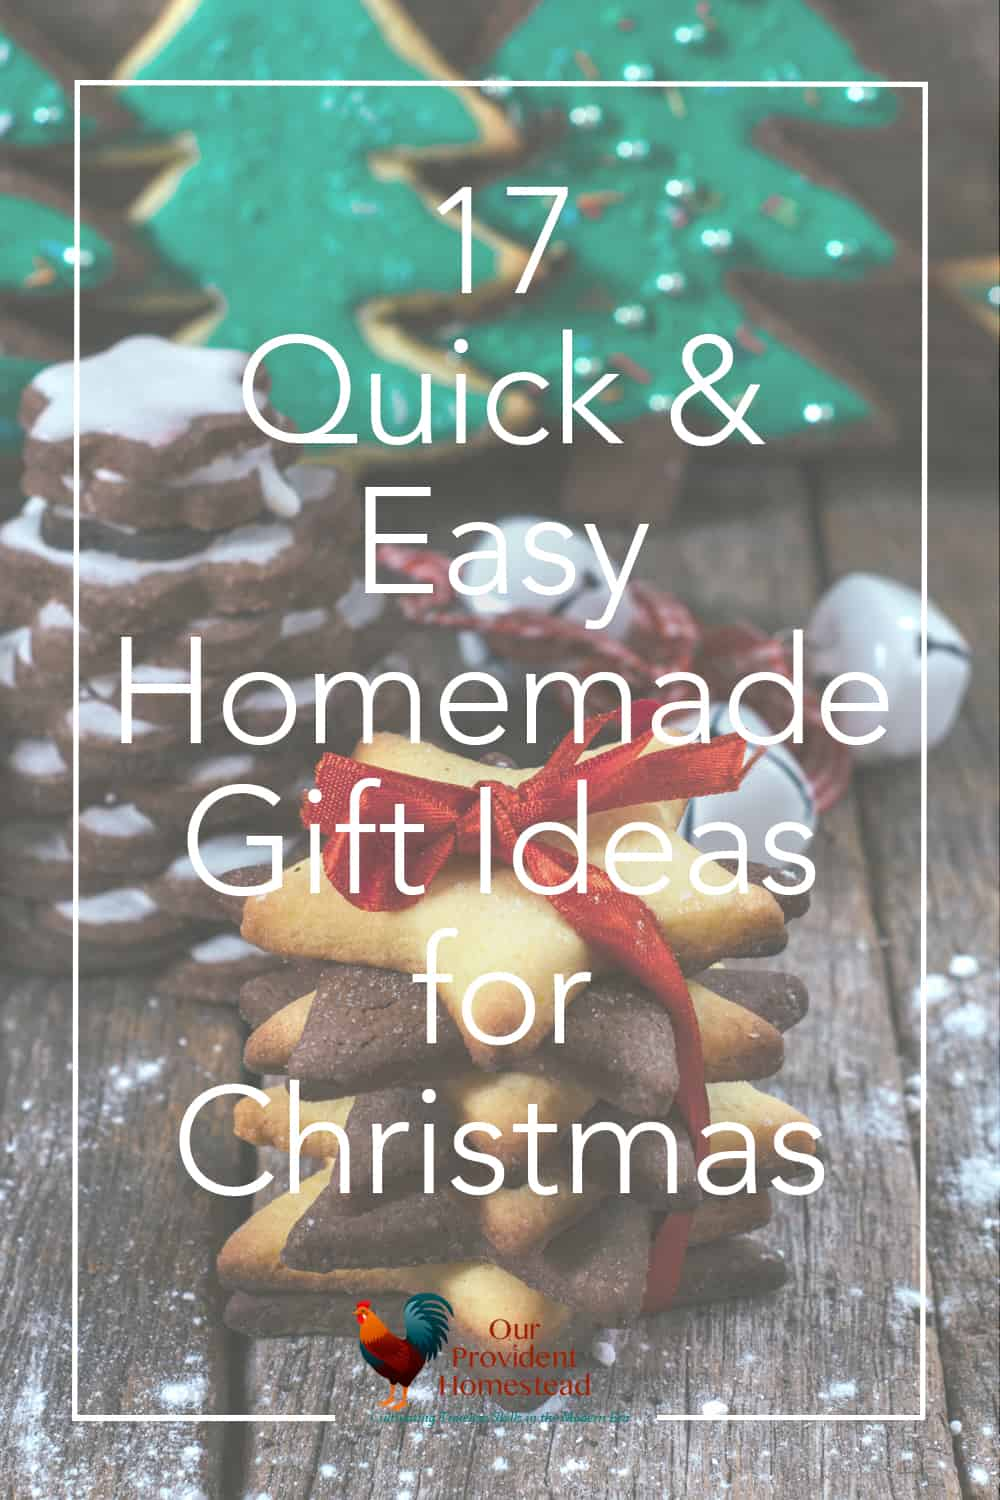 Do you want to give a homemade gift for the holidays this year? Click here to get these 17 quick and easy homemade gift ideas for a DIY Christmas. #homemade #diy #christmas #giftideas